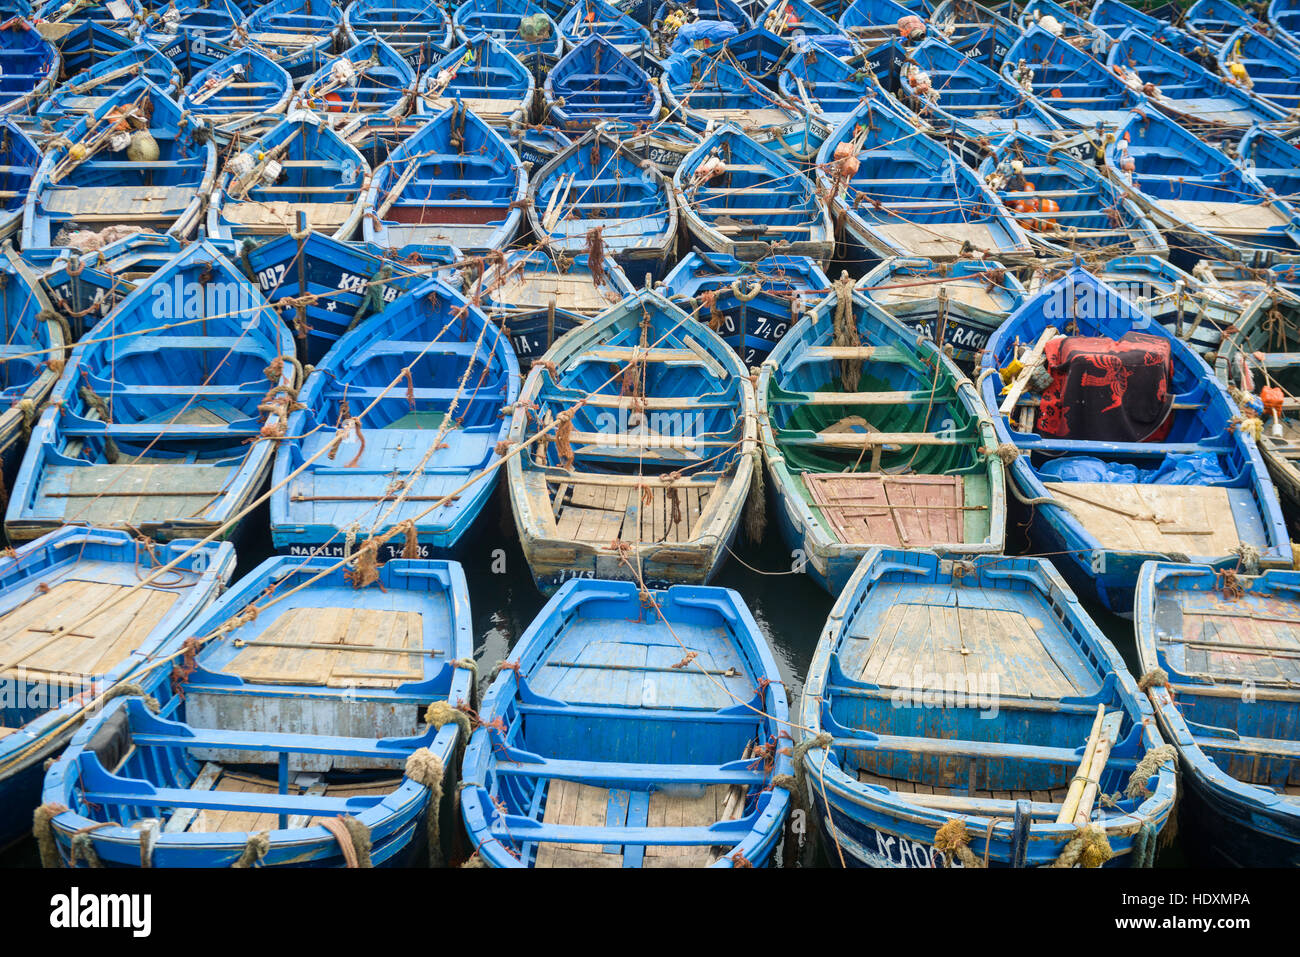 Boat parking, Essaouira, Morocco - Stock Image